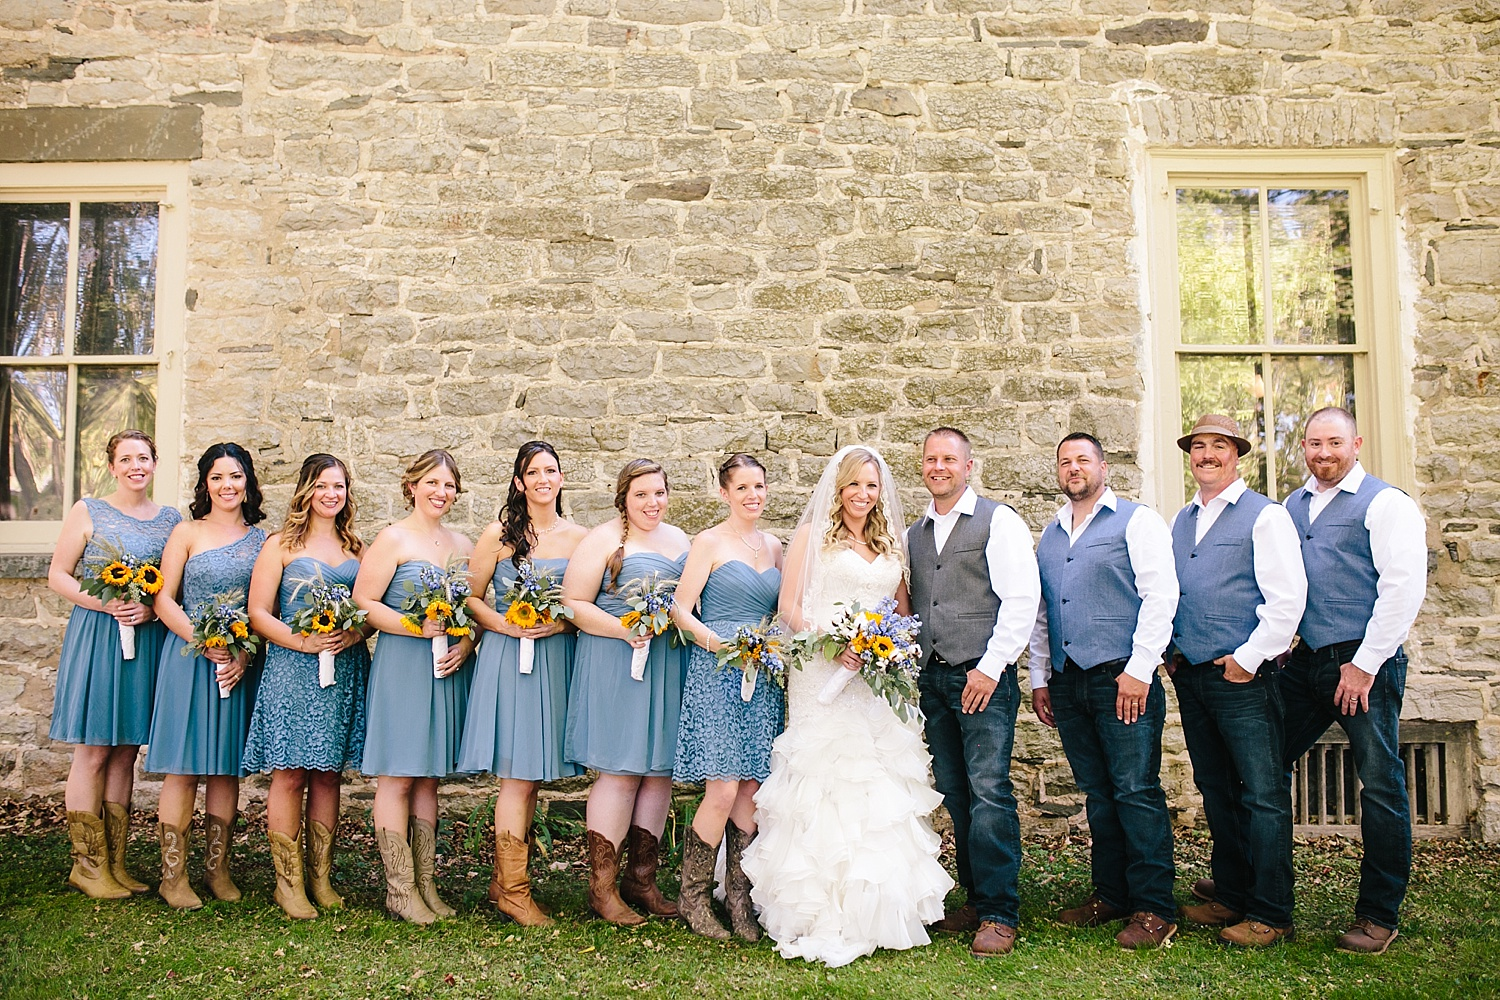 jennyryan_newbeginnings_farmstead_upstatenewyork_wedding_image063.jpg